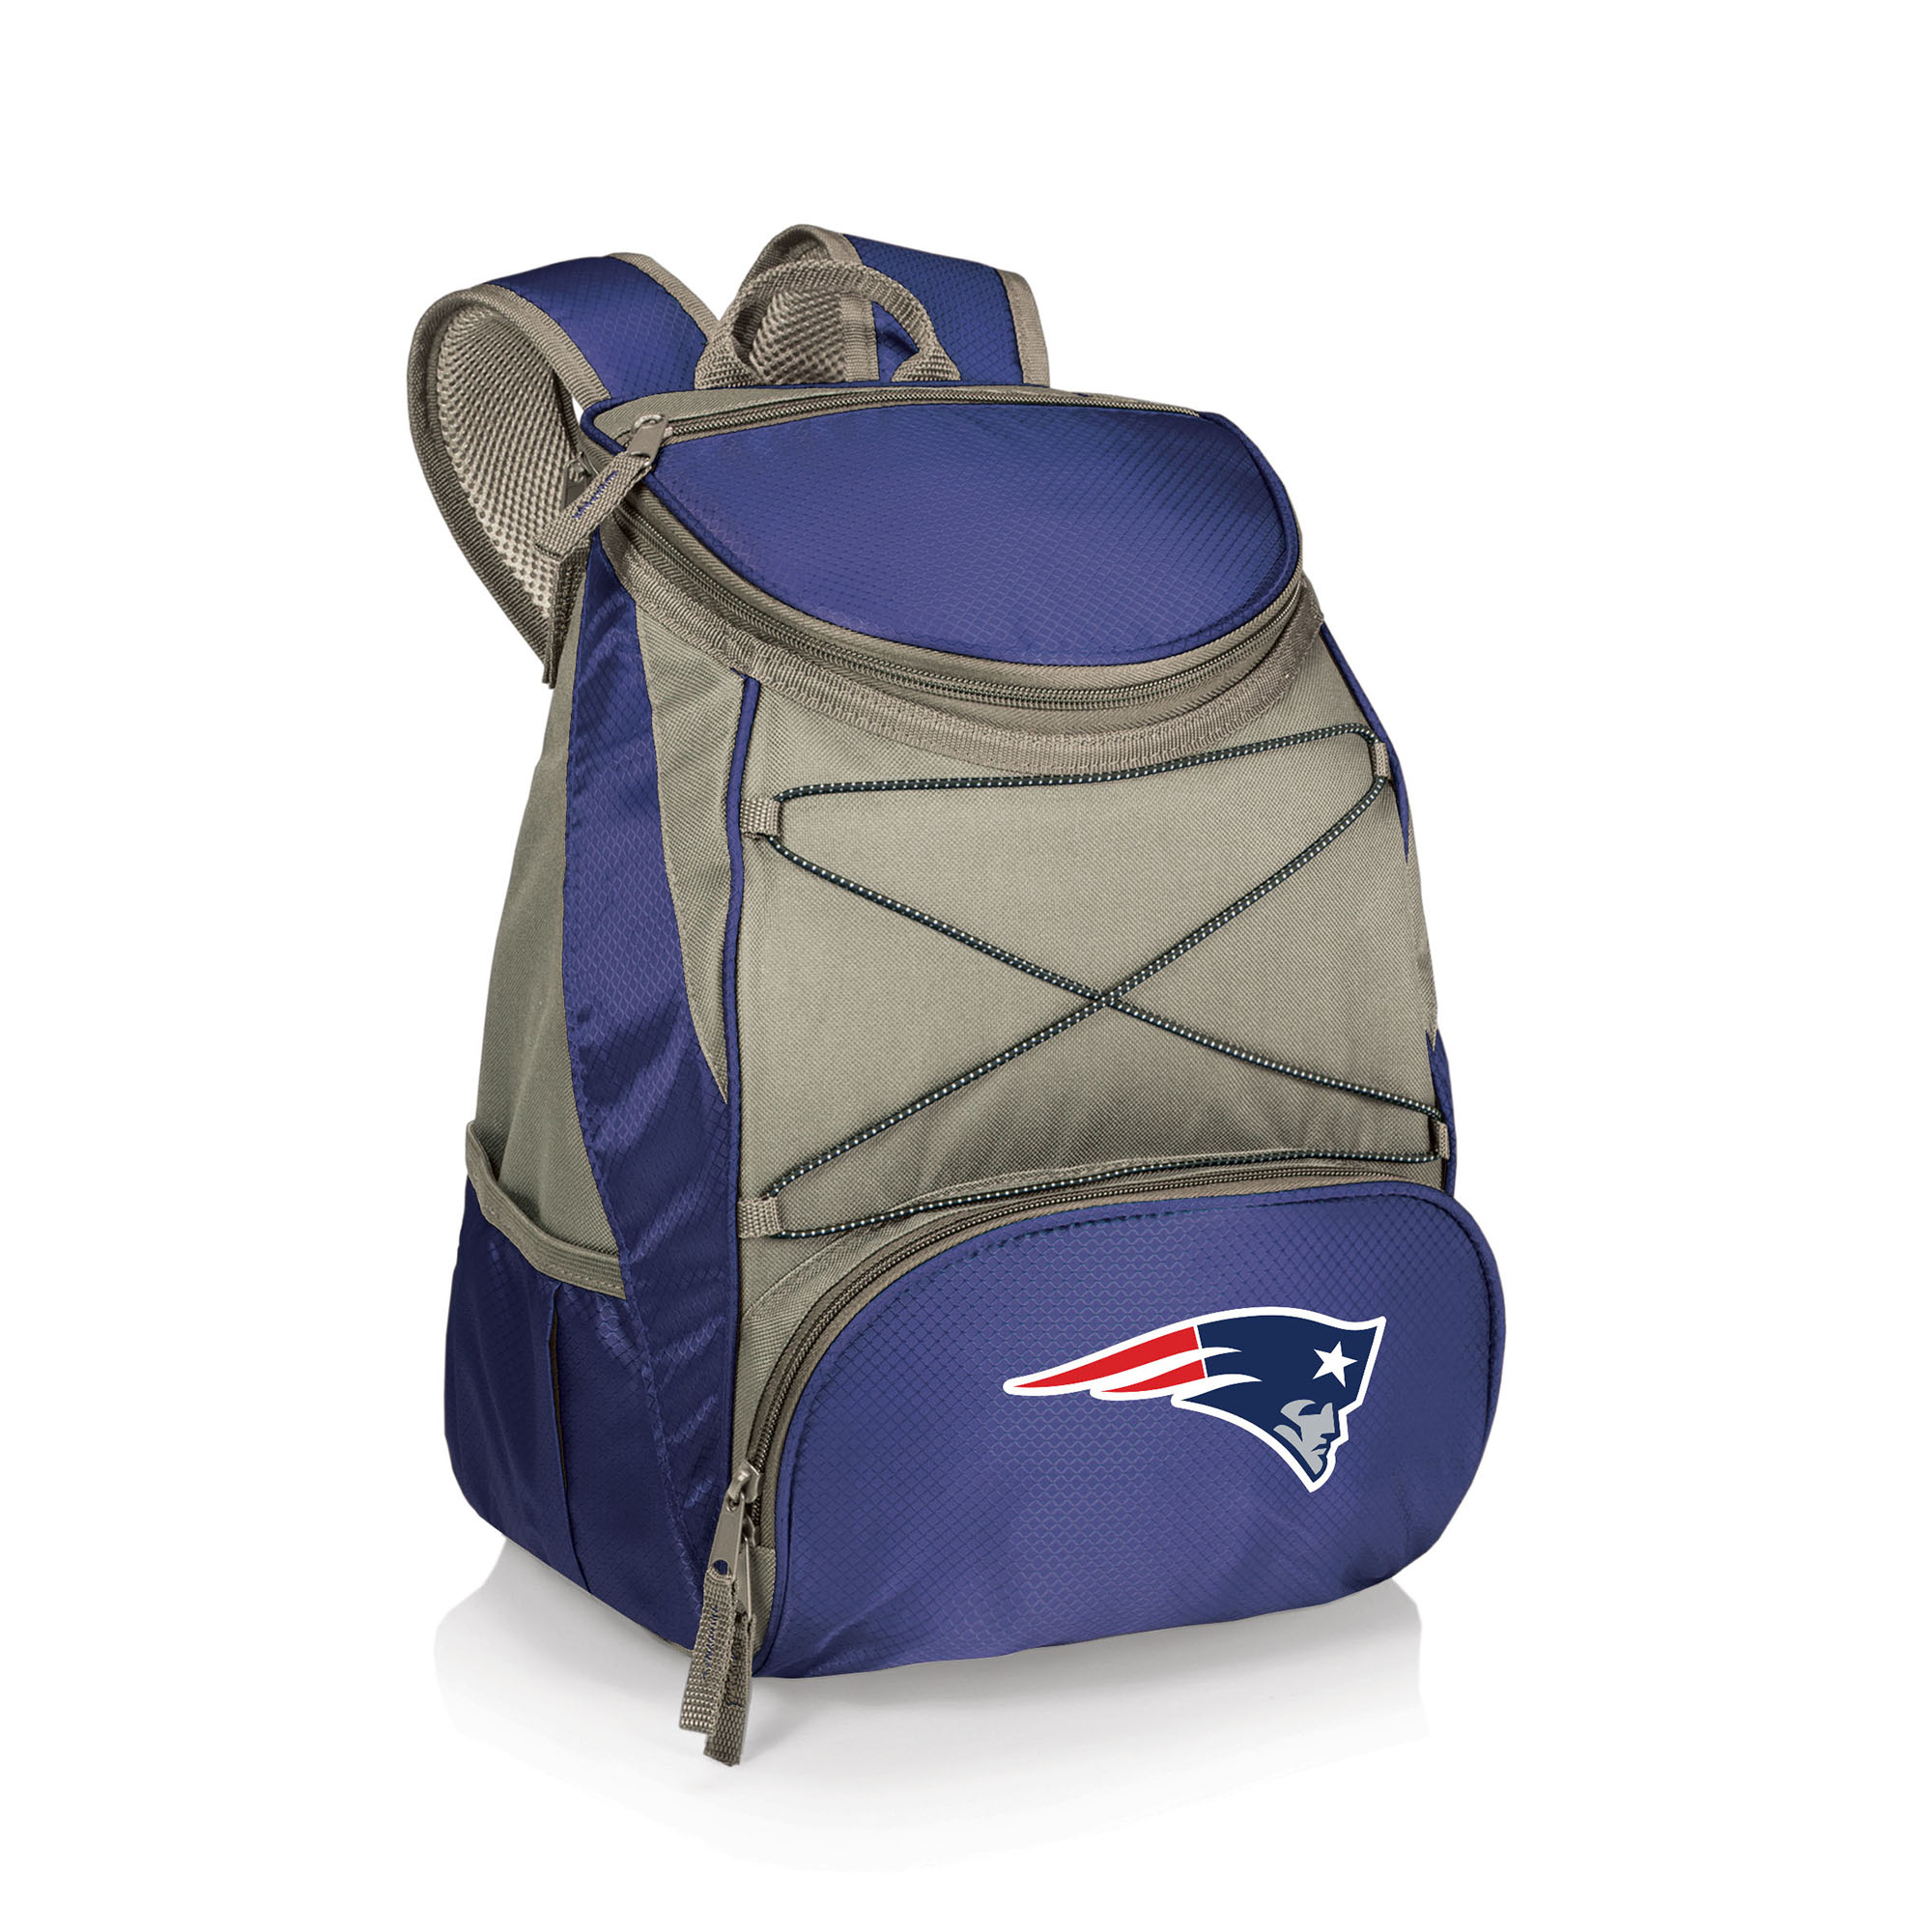 New England Patriots PTX Backpack Cooler - Navy - No Size